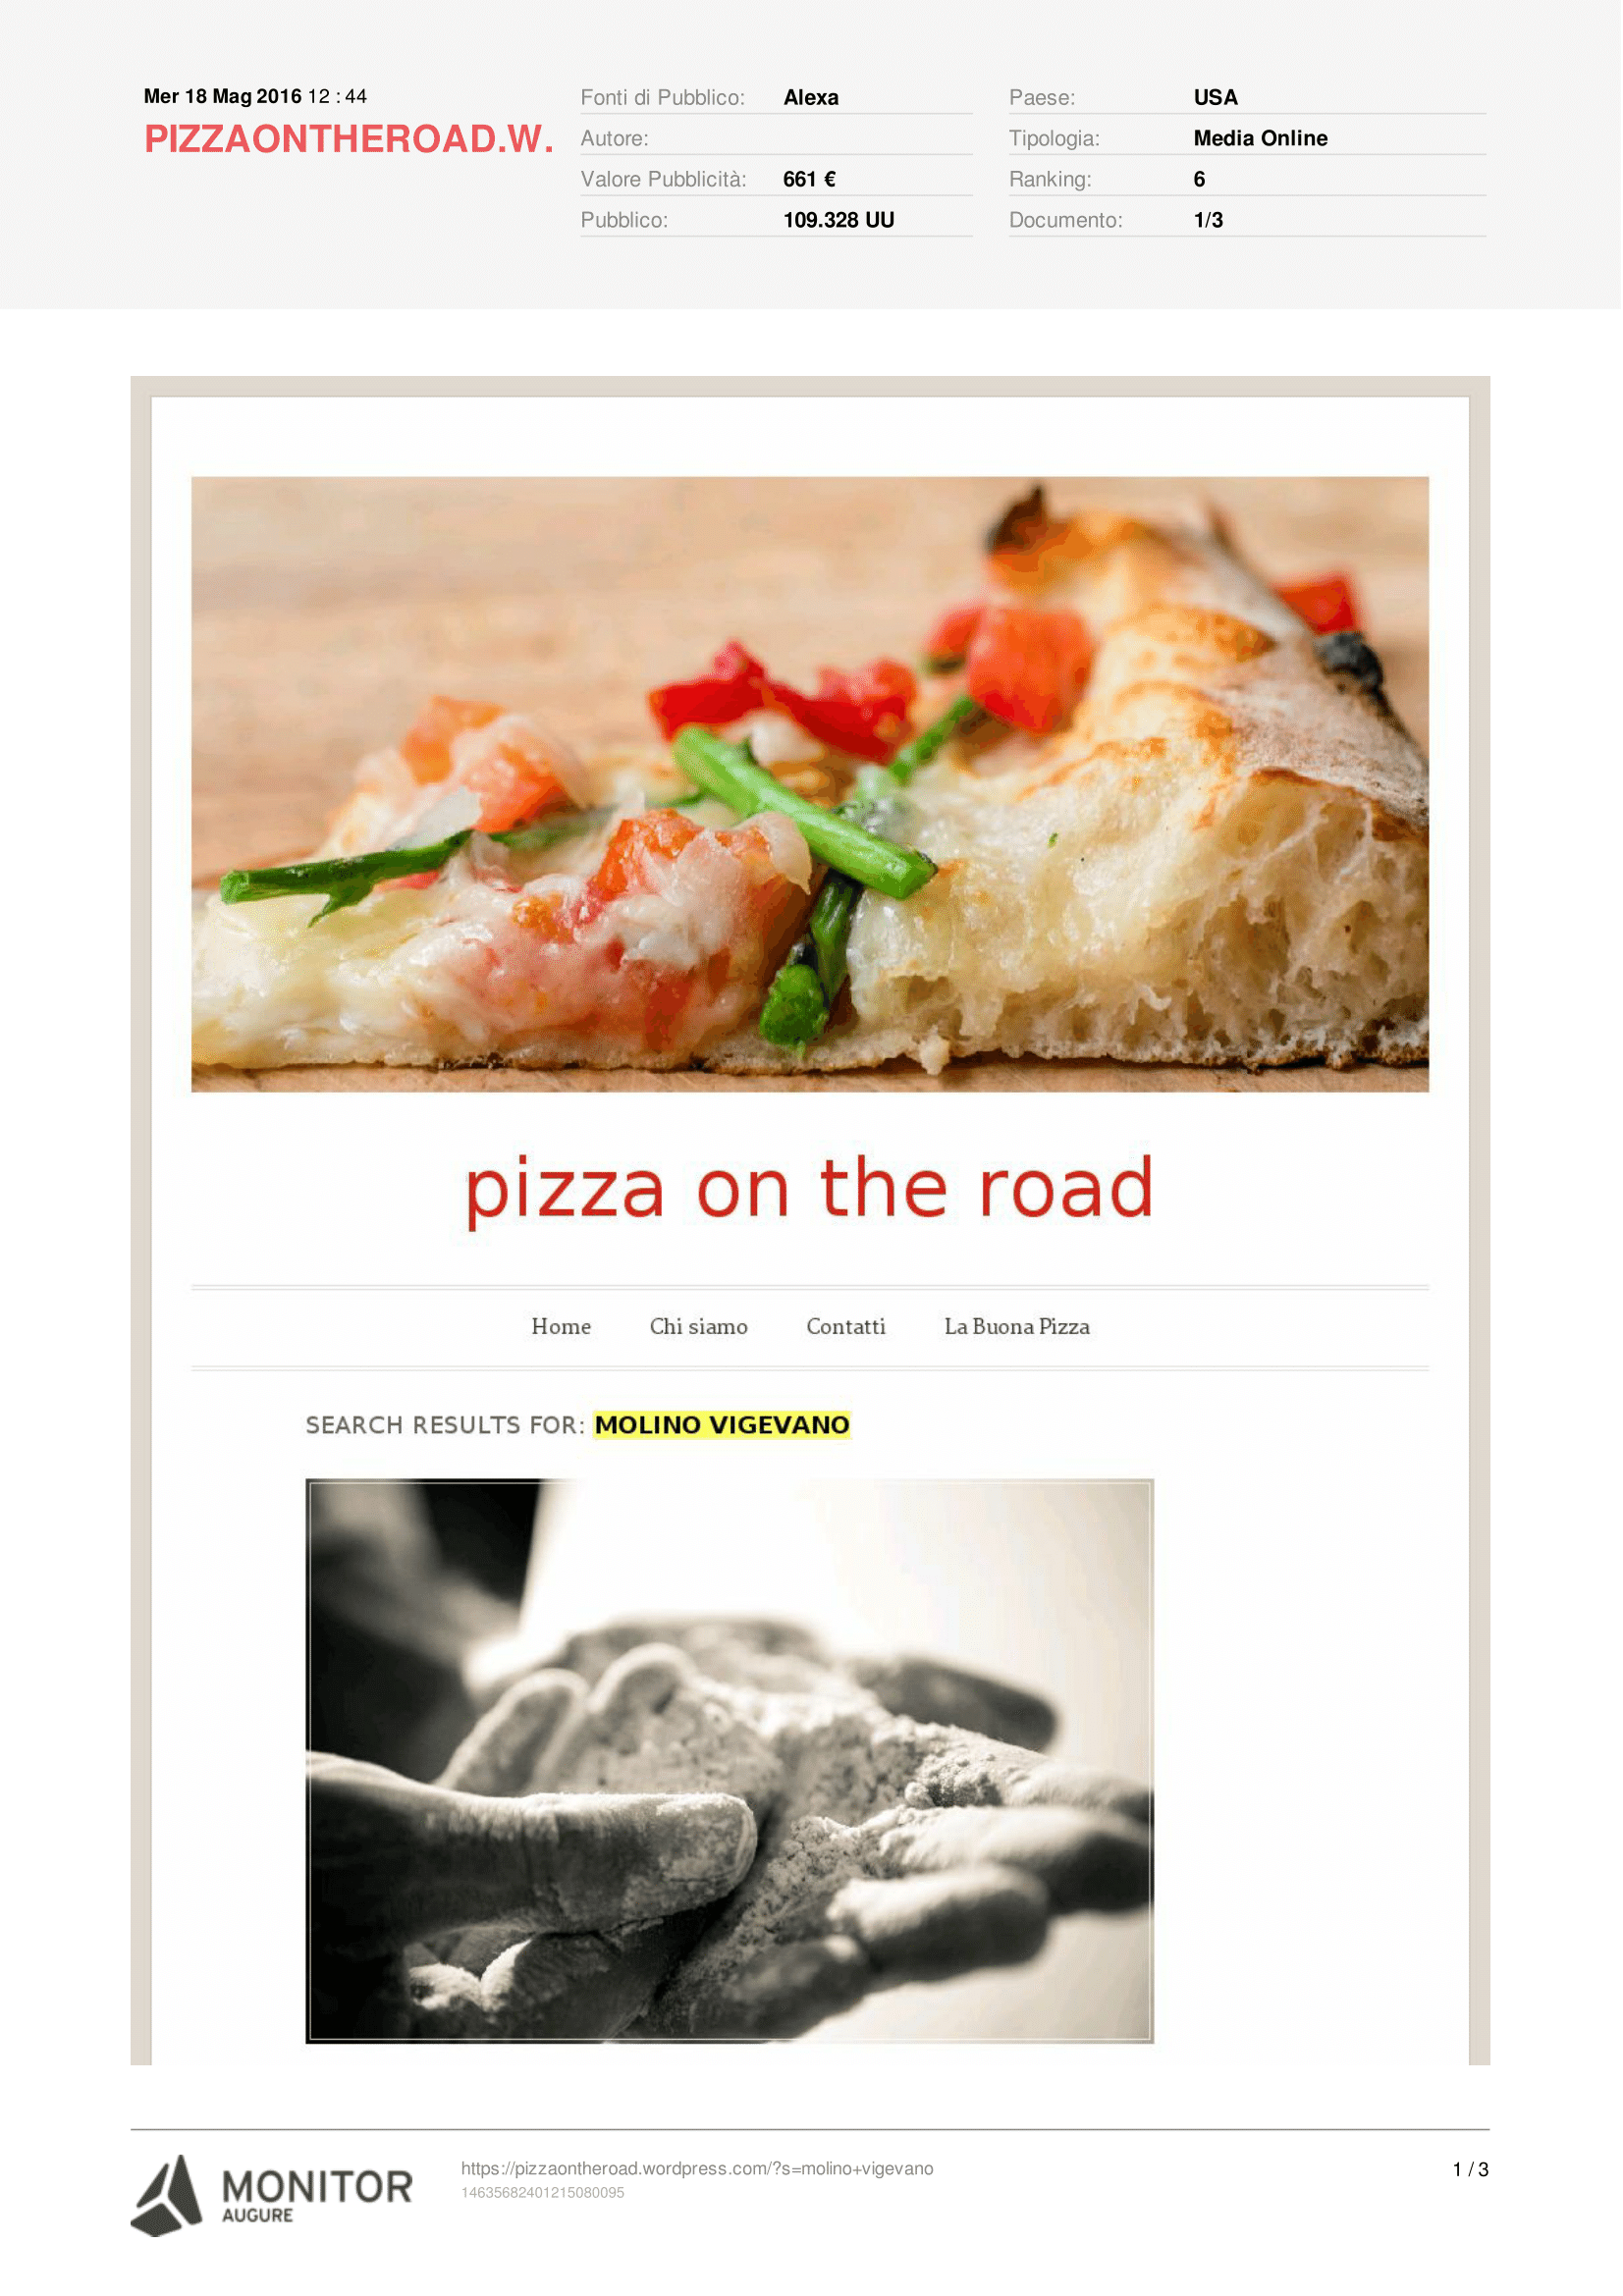 18.05.16_pizzaontheroad.wordpress.com-1